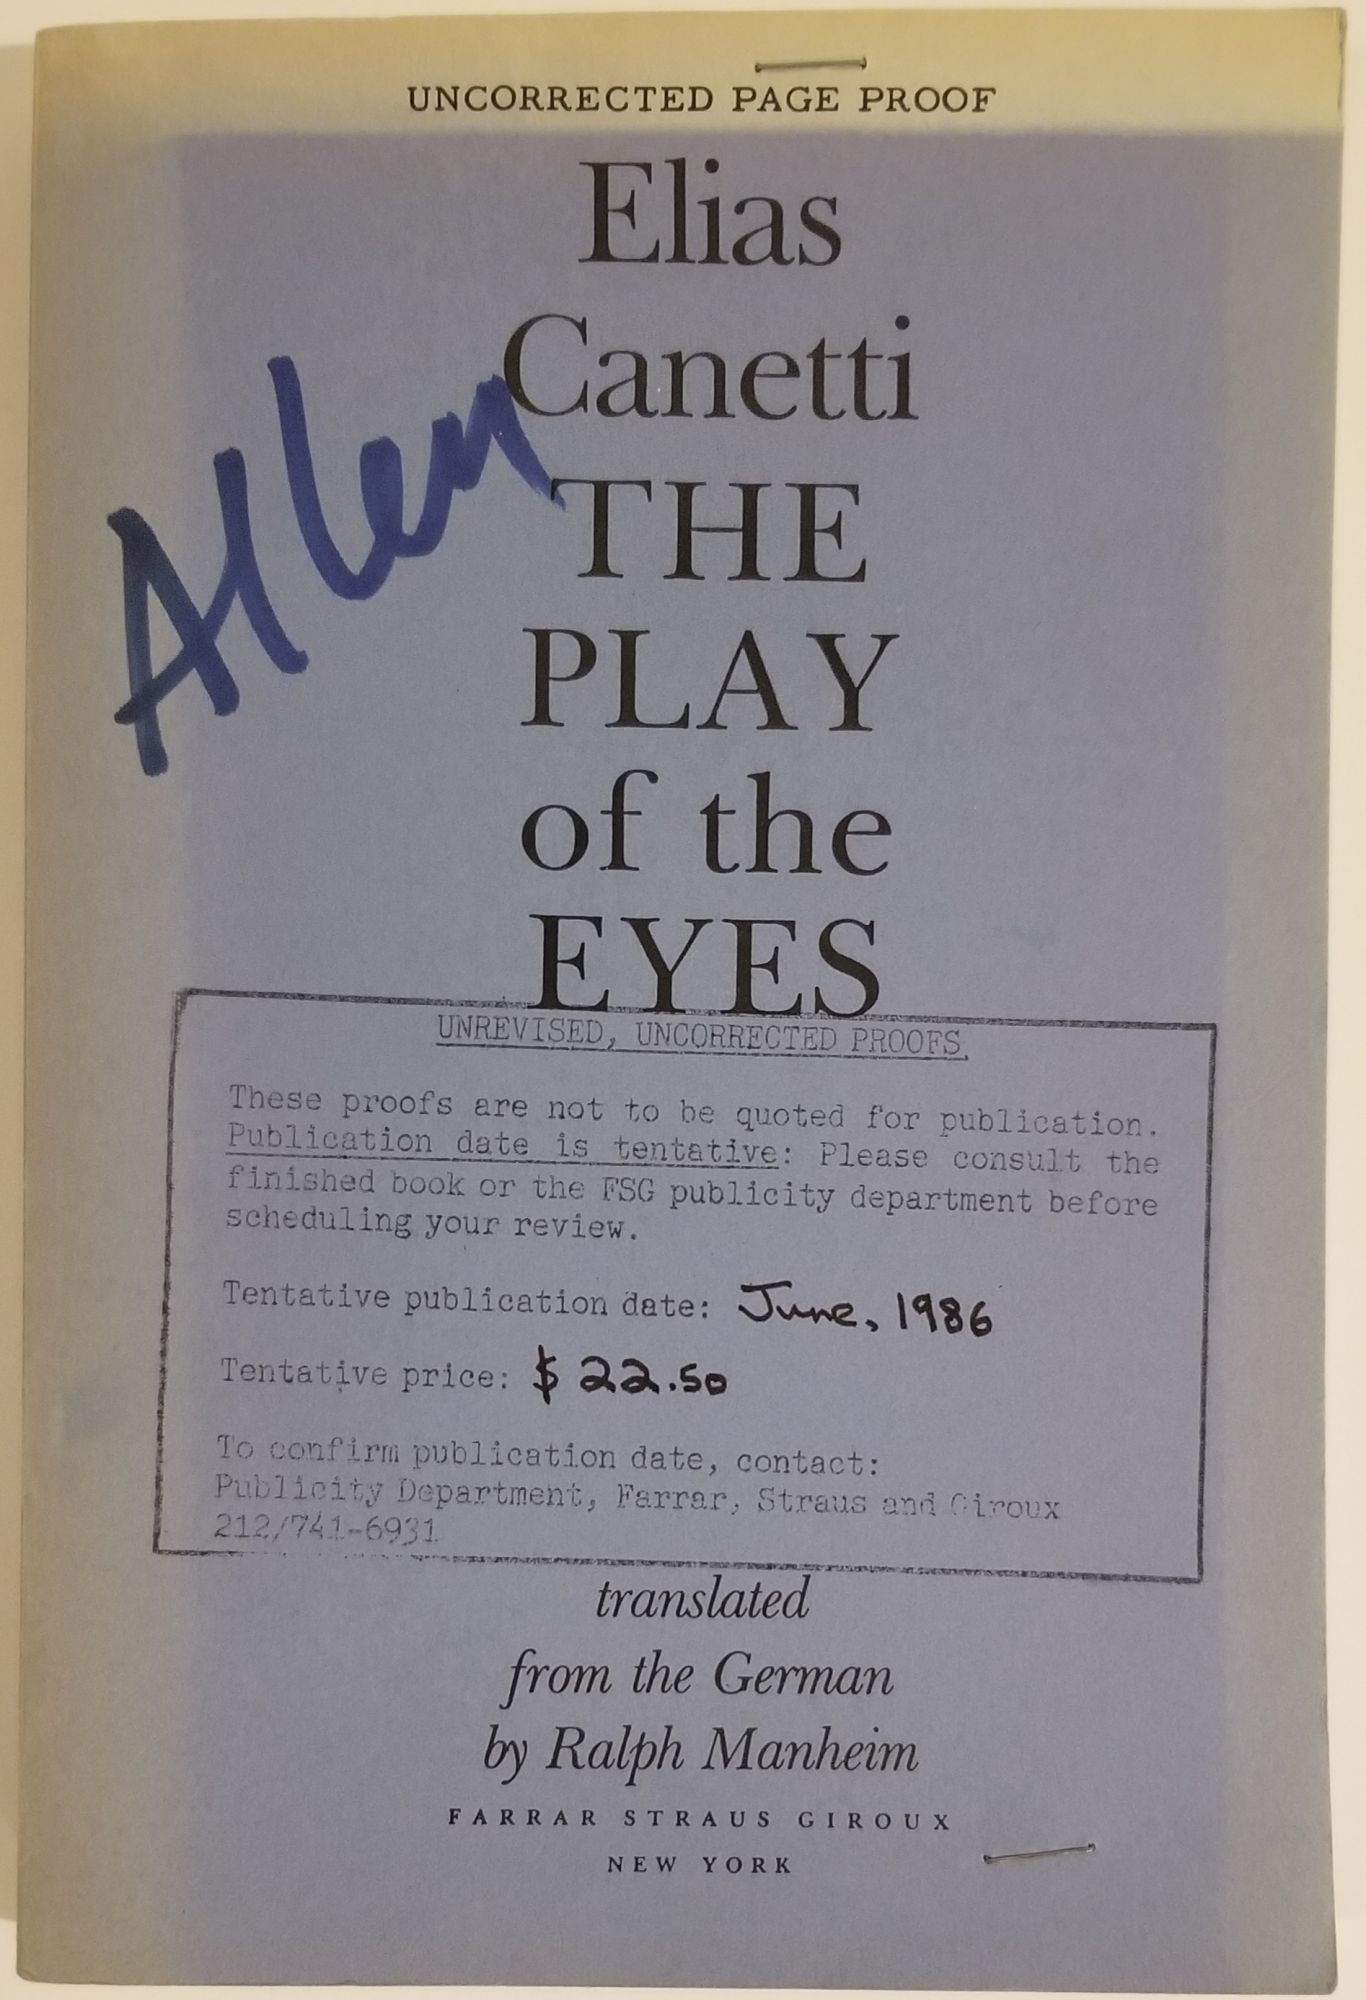 THE PLAY OF THE EYES. Elias Canetti.